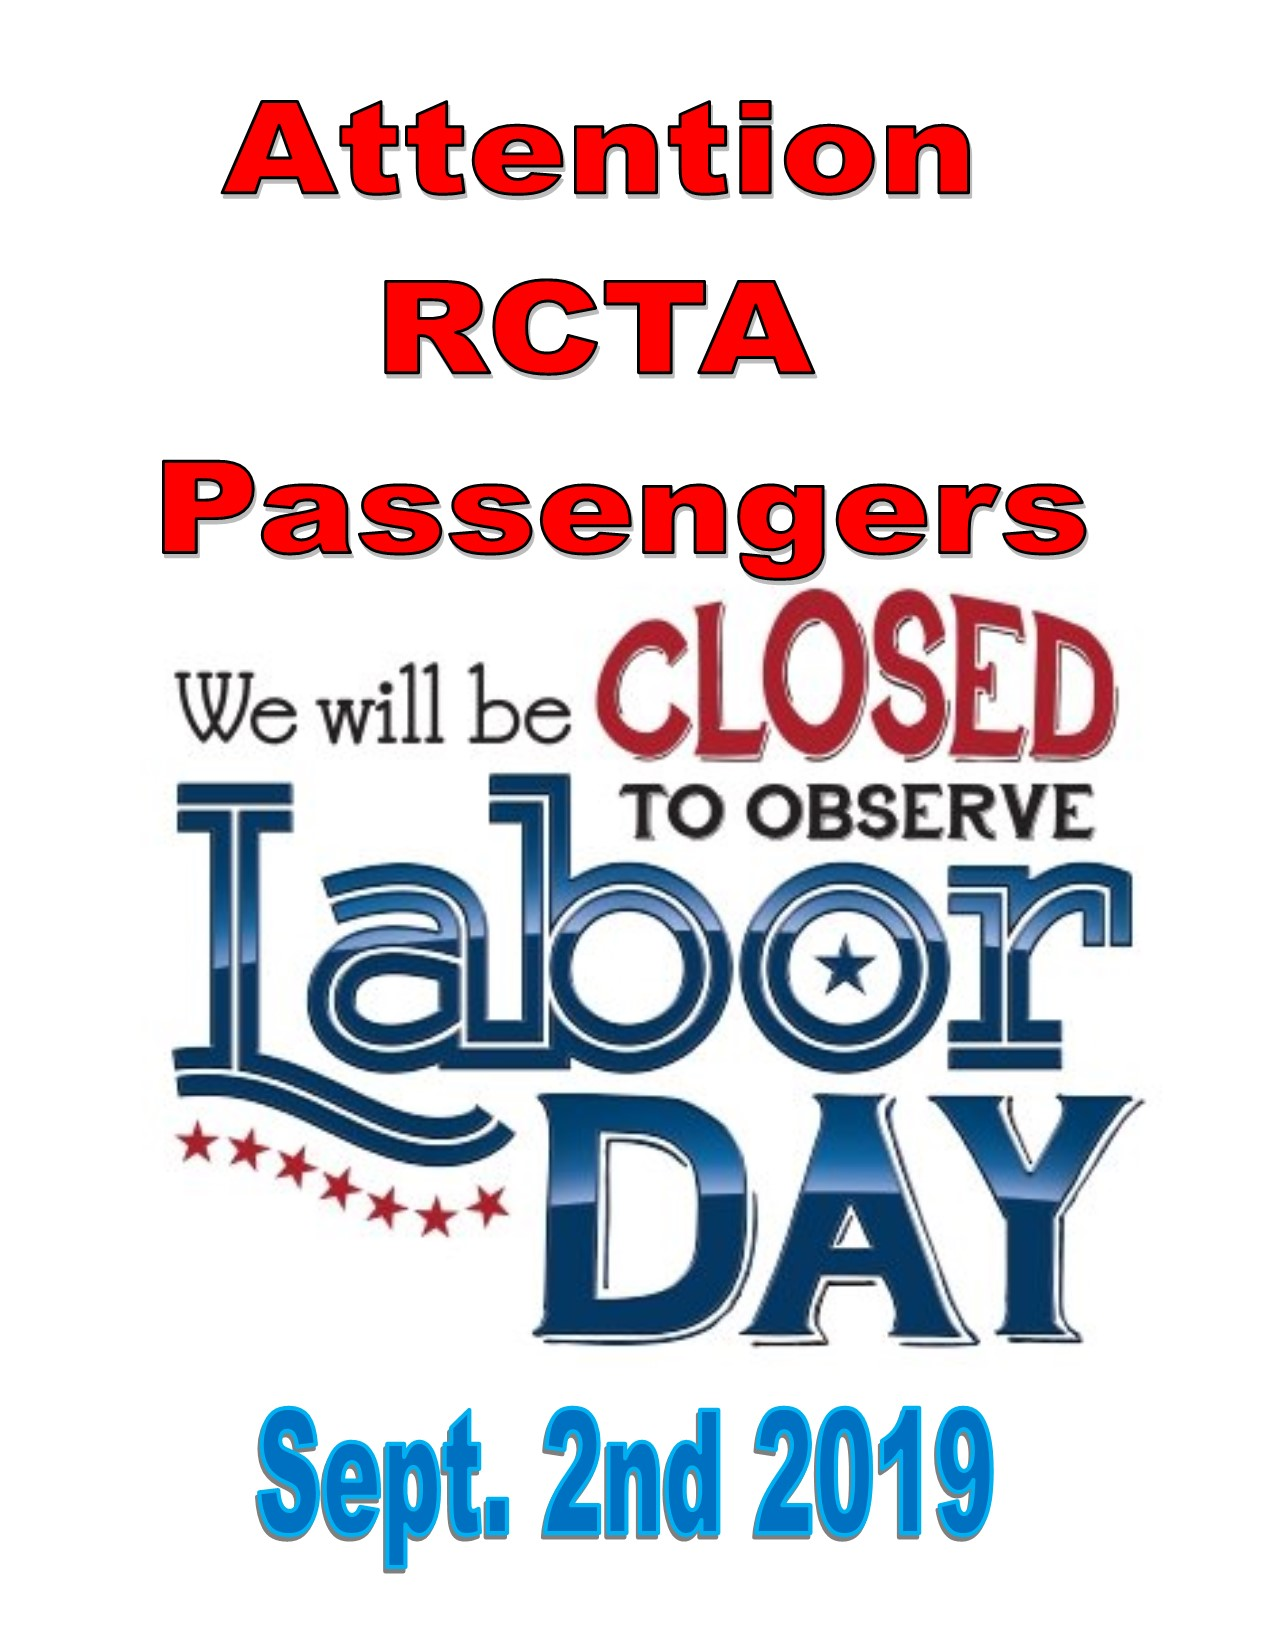 Labor day closed flyer.jpg